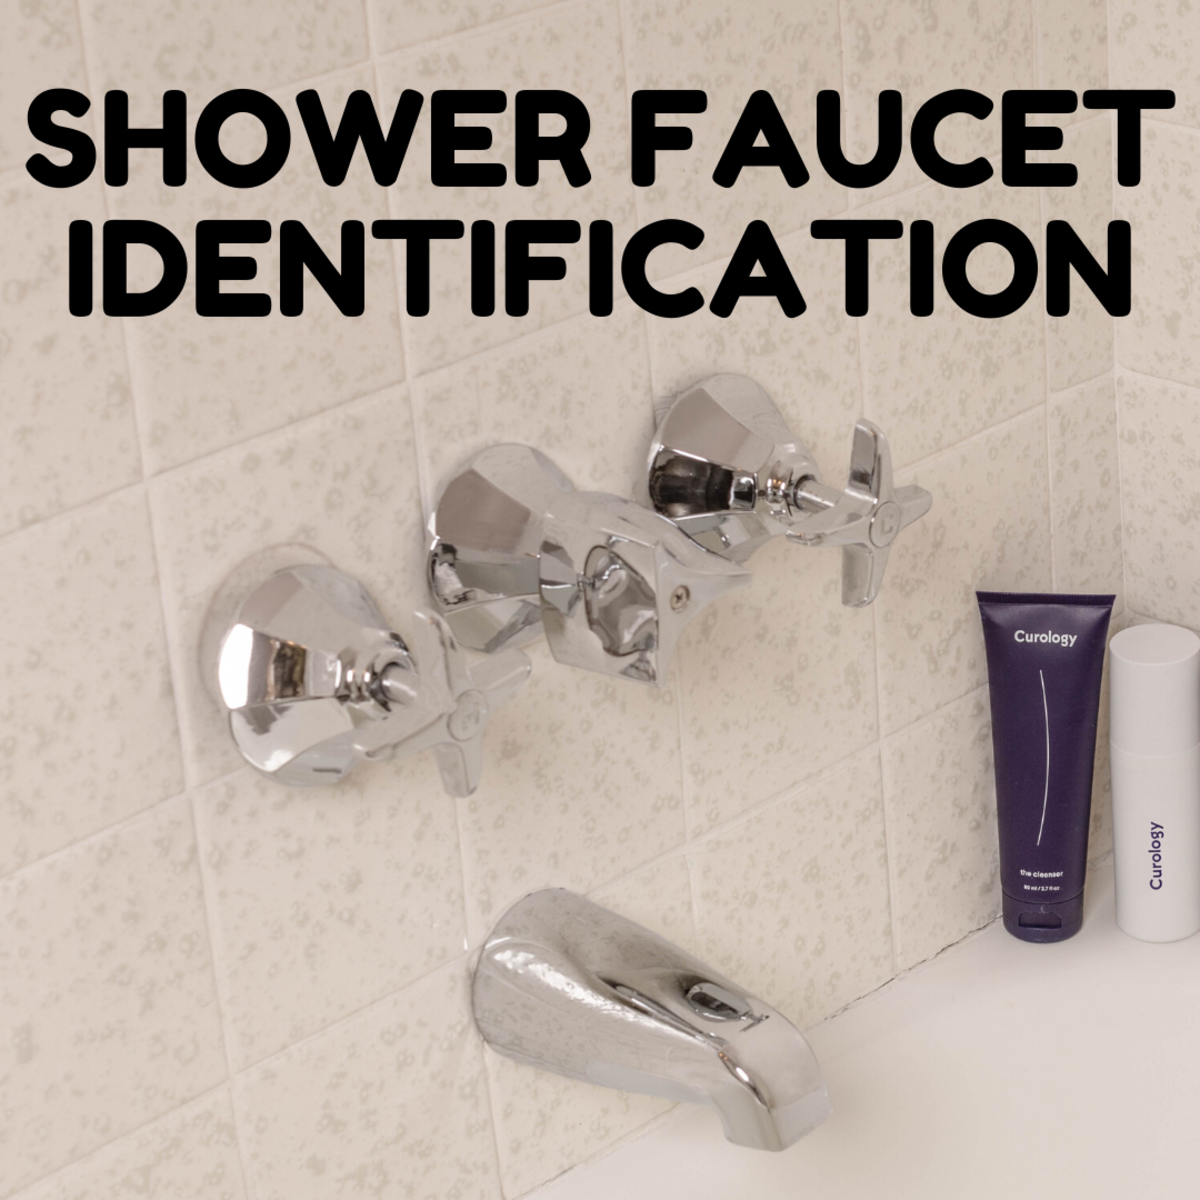 Shower Faucet (Valve/Stem) Cartridge Identification & Repairs